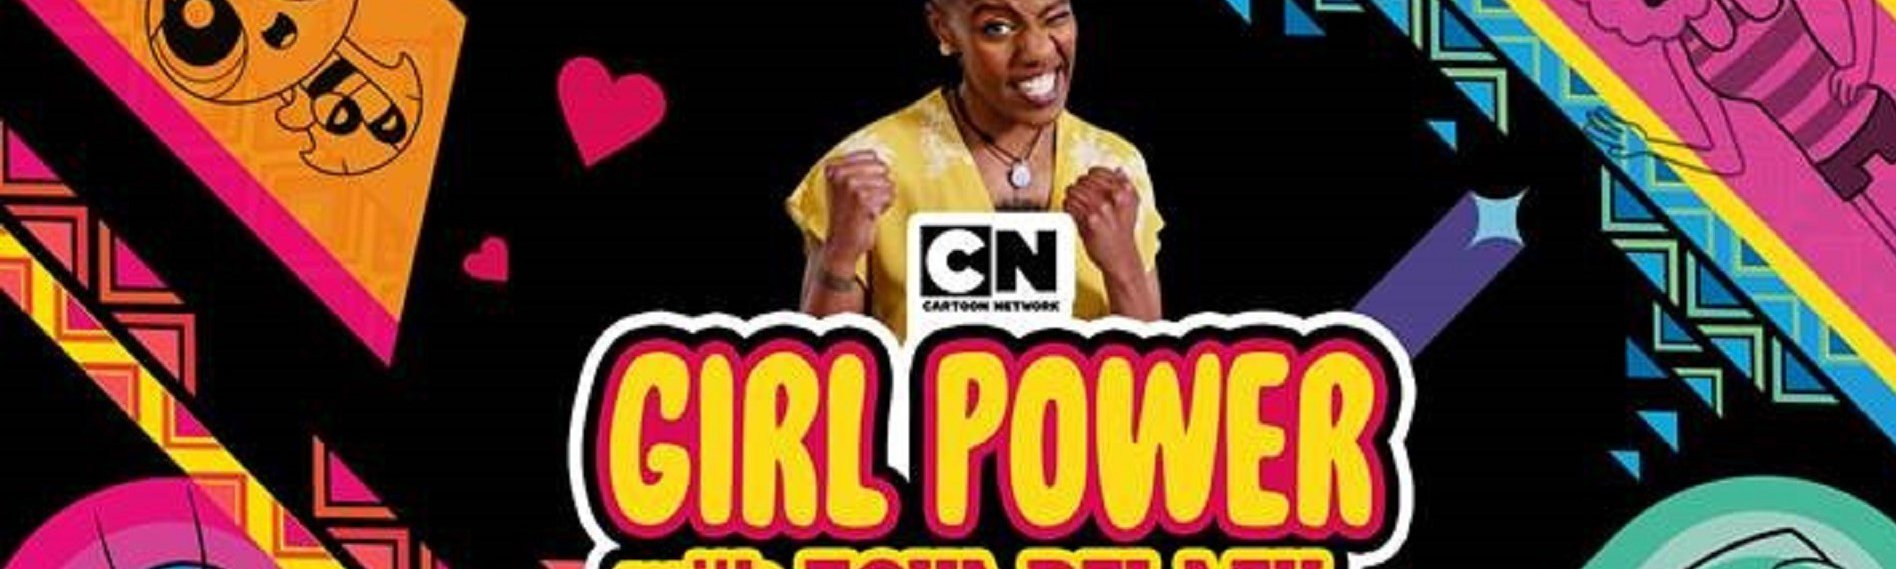 Cartoon Network Girl Power | Things to do With Kids | Shows